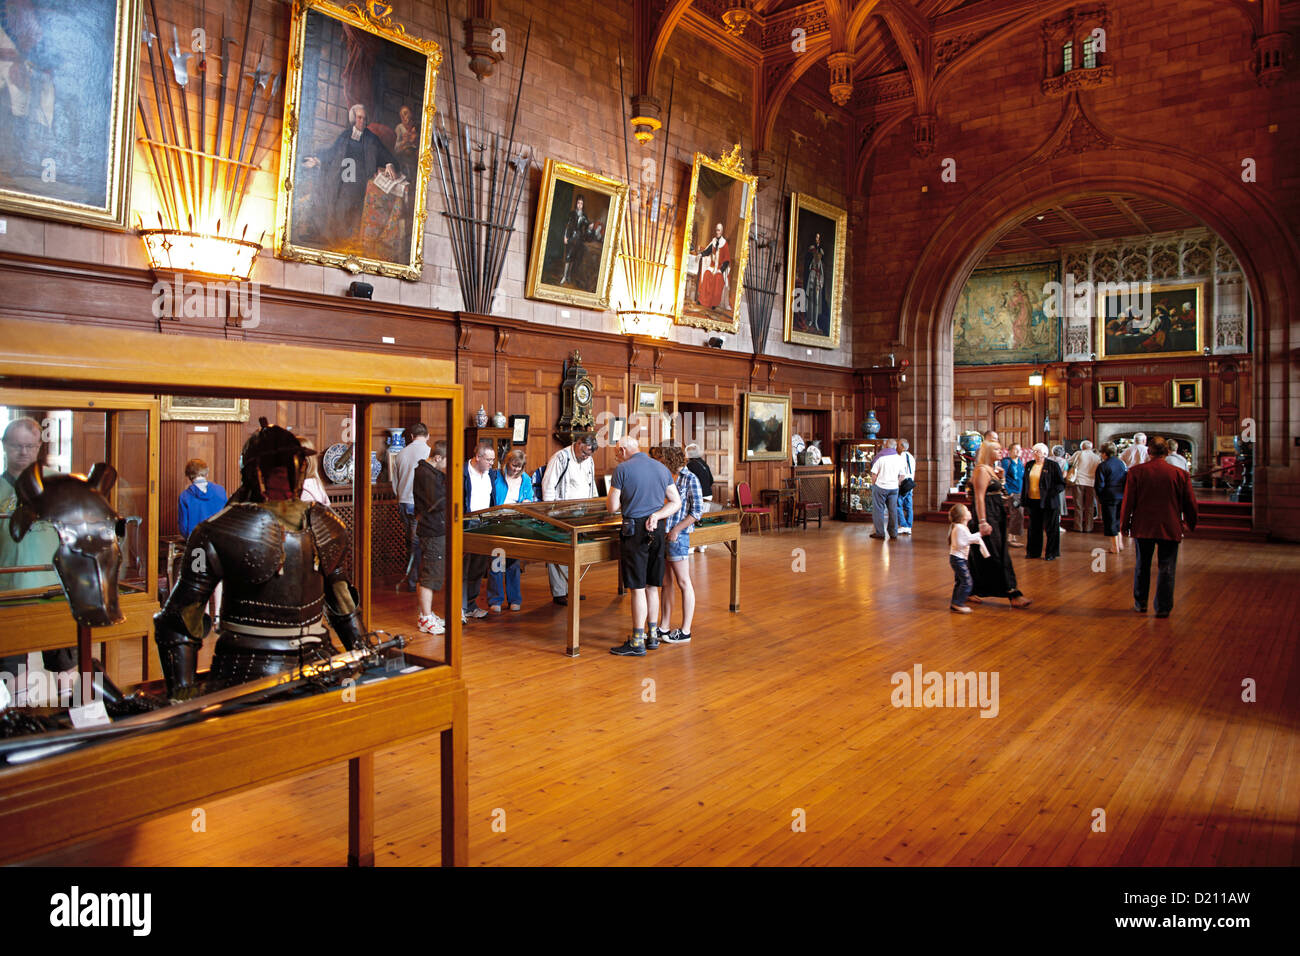 Visitors in the exibition at Kings Hall in Bamburgh Castle, Bamburgh, Northumberland, England, Great Britain, Europe - Stock Image